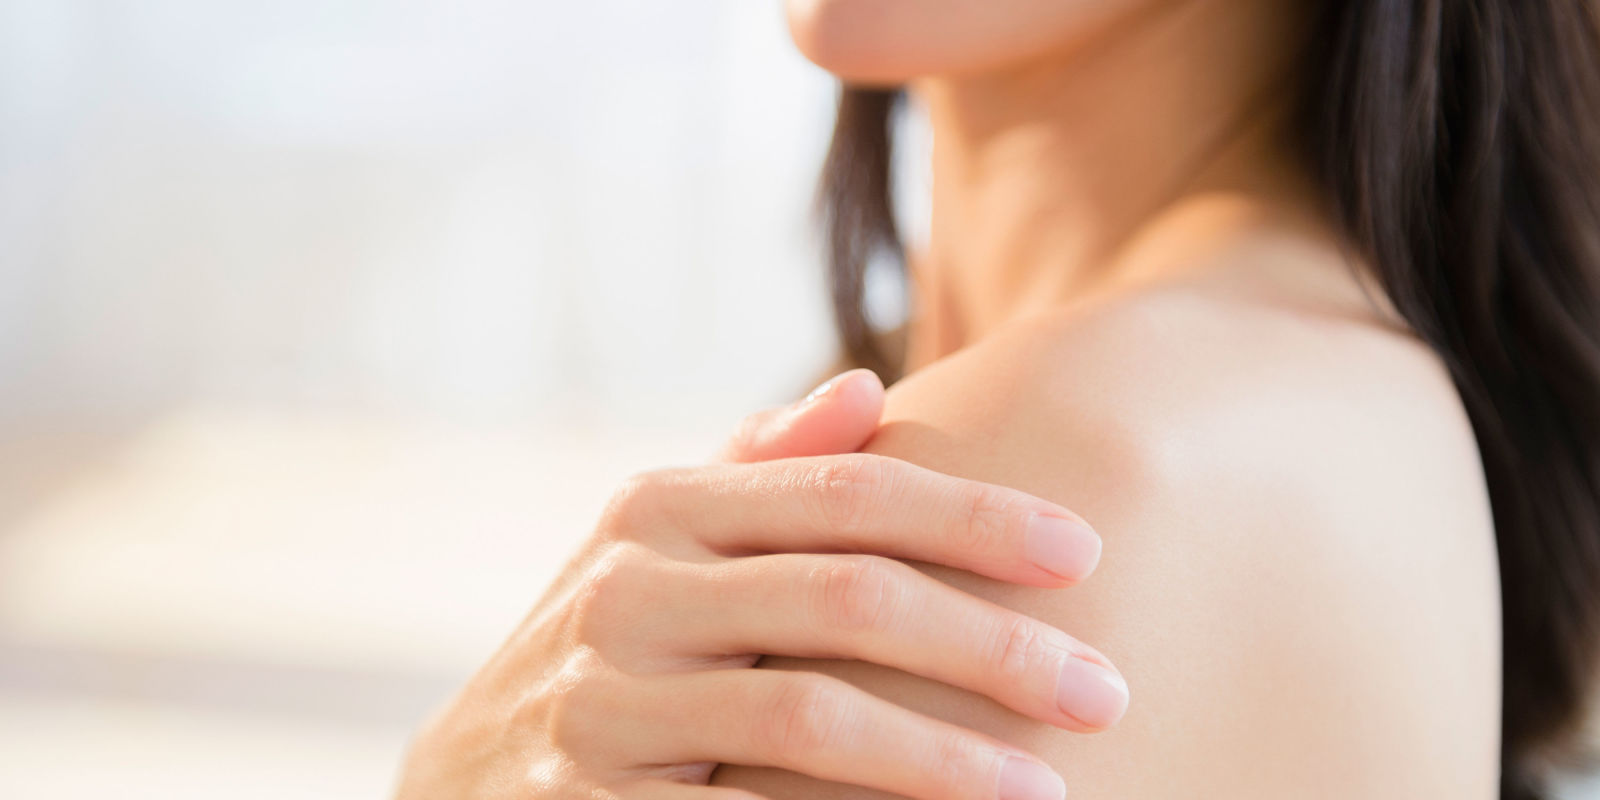 The minerals in hard water can dry the skin out